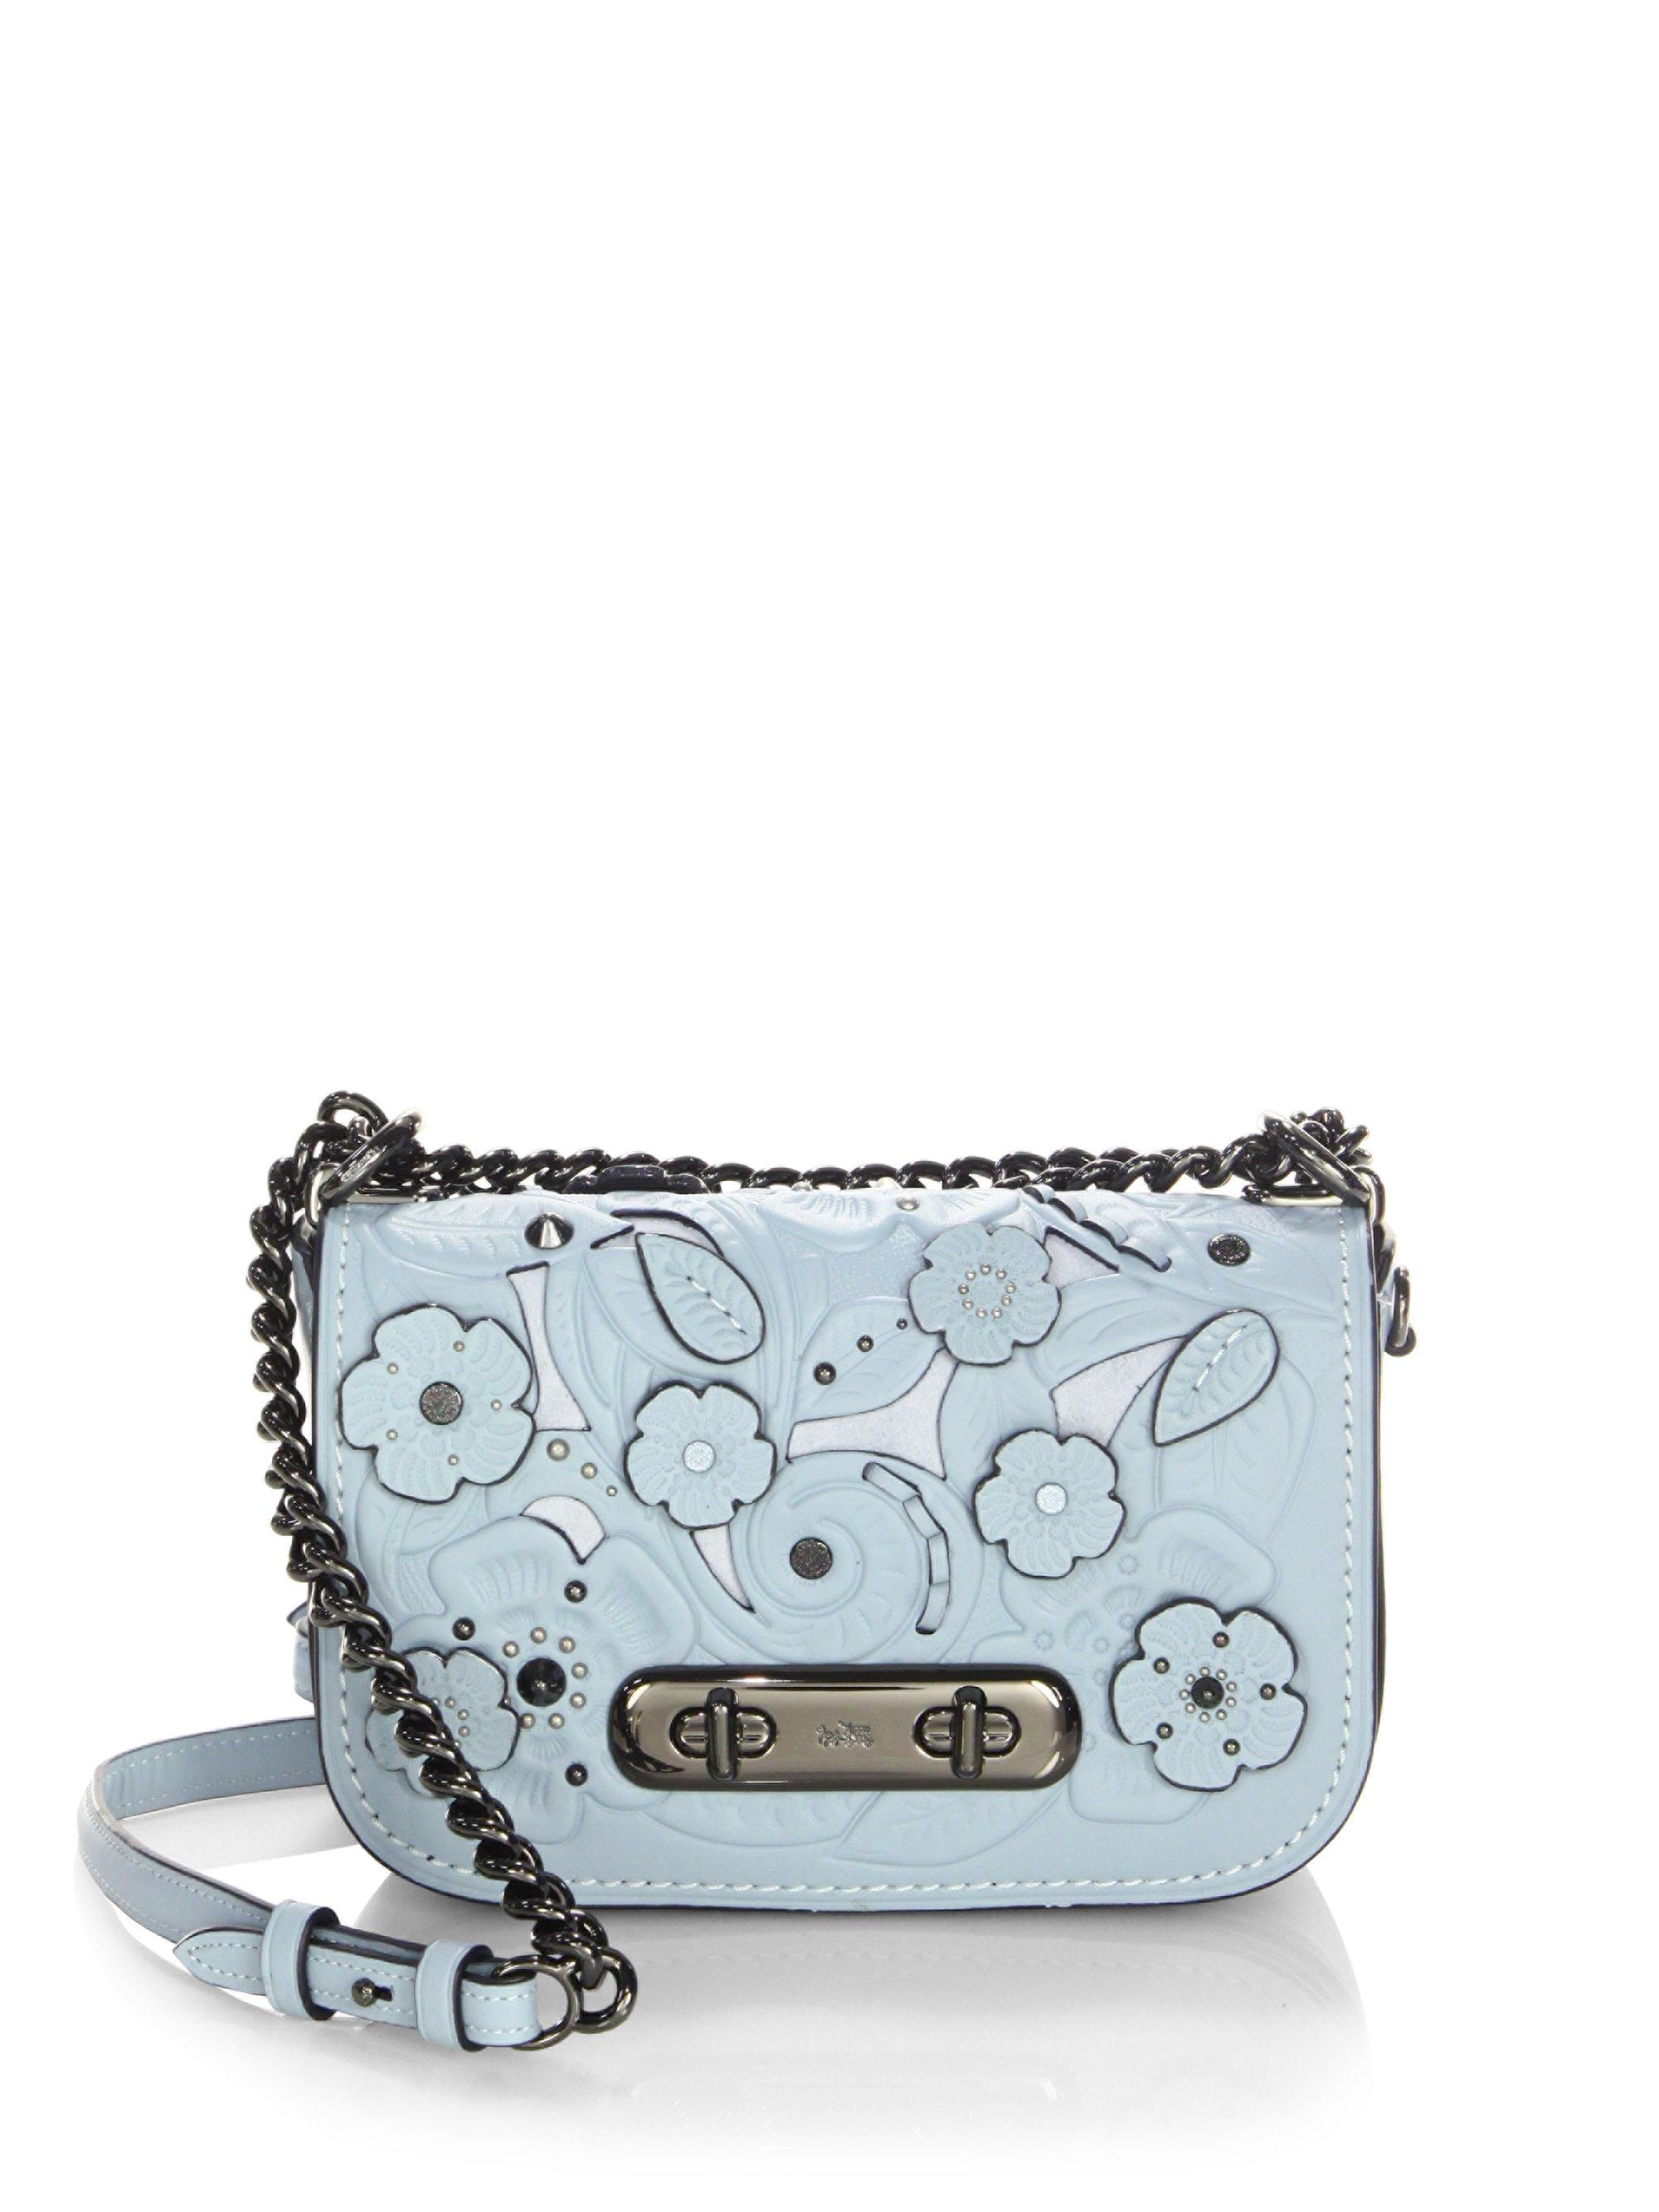 Lyst - Coach Swagger Flower Leather Crossbody Bag In Blue